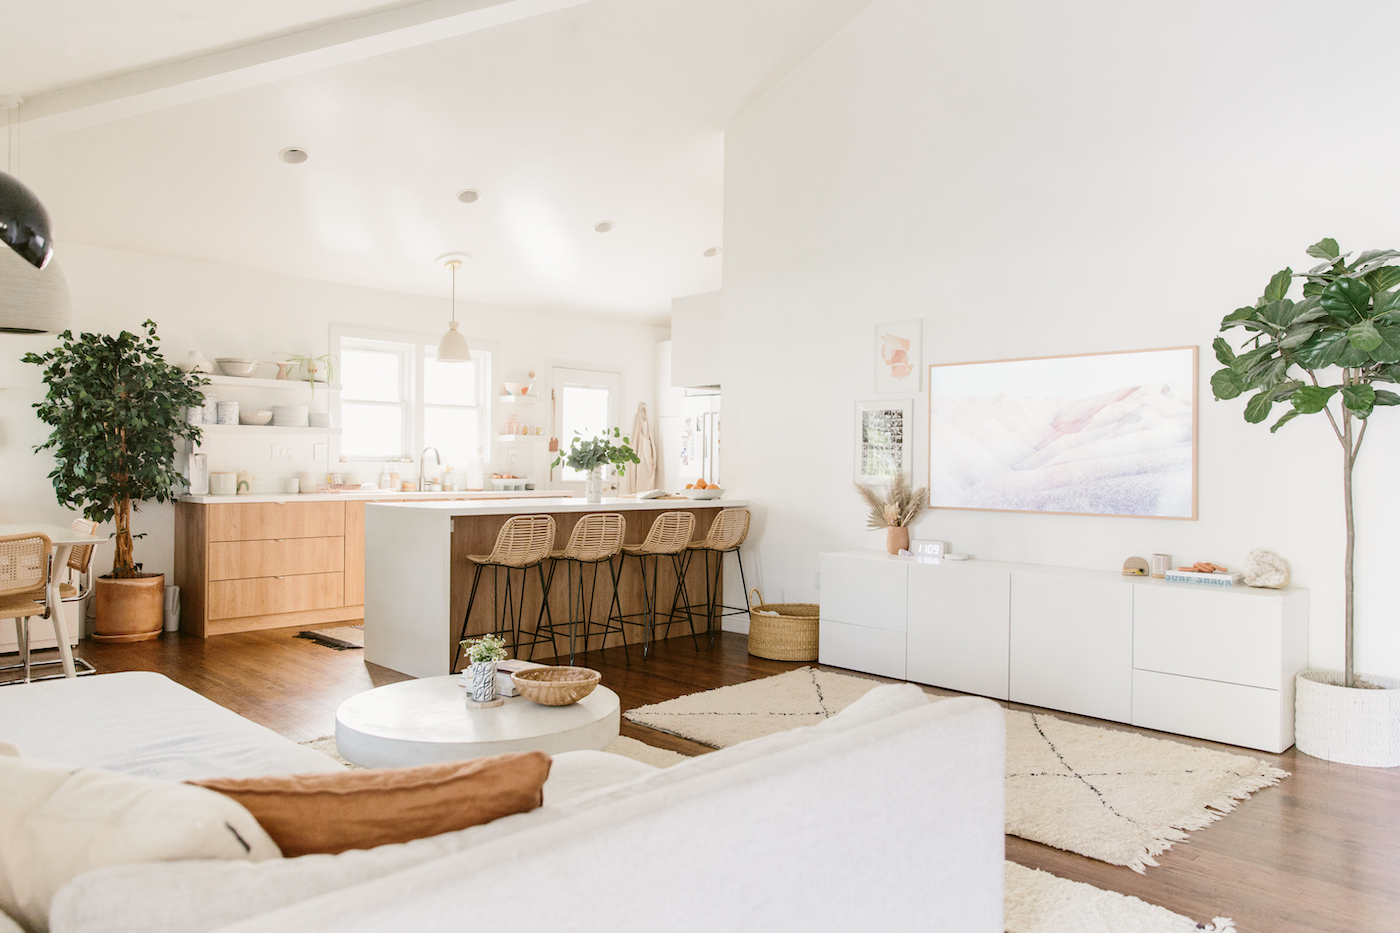 molly madfis home, almost makes perfect, california home, neutral home decor, kitchen, minimalist kitchen